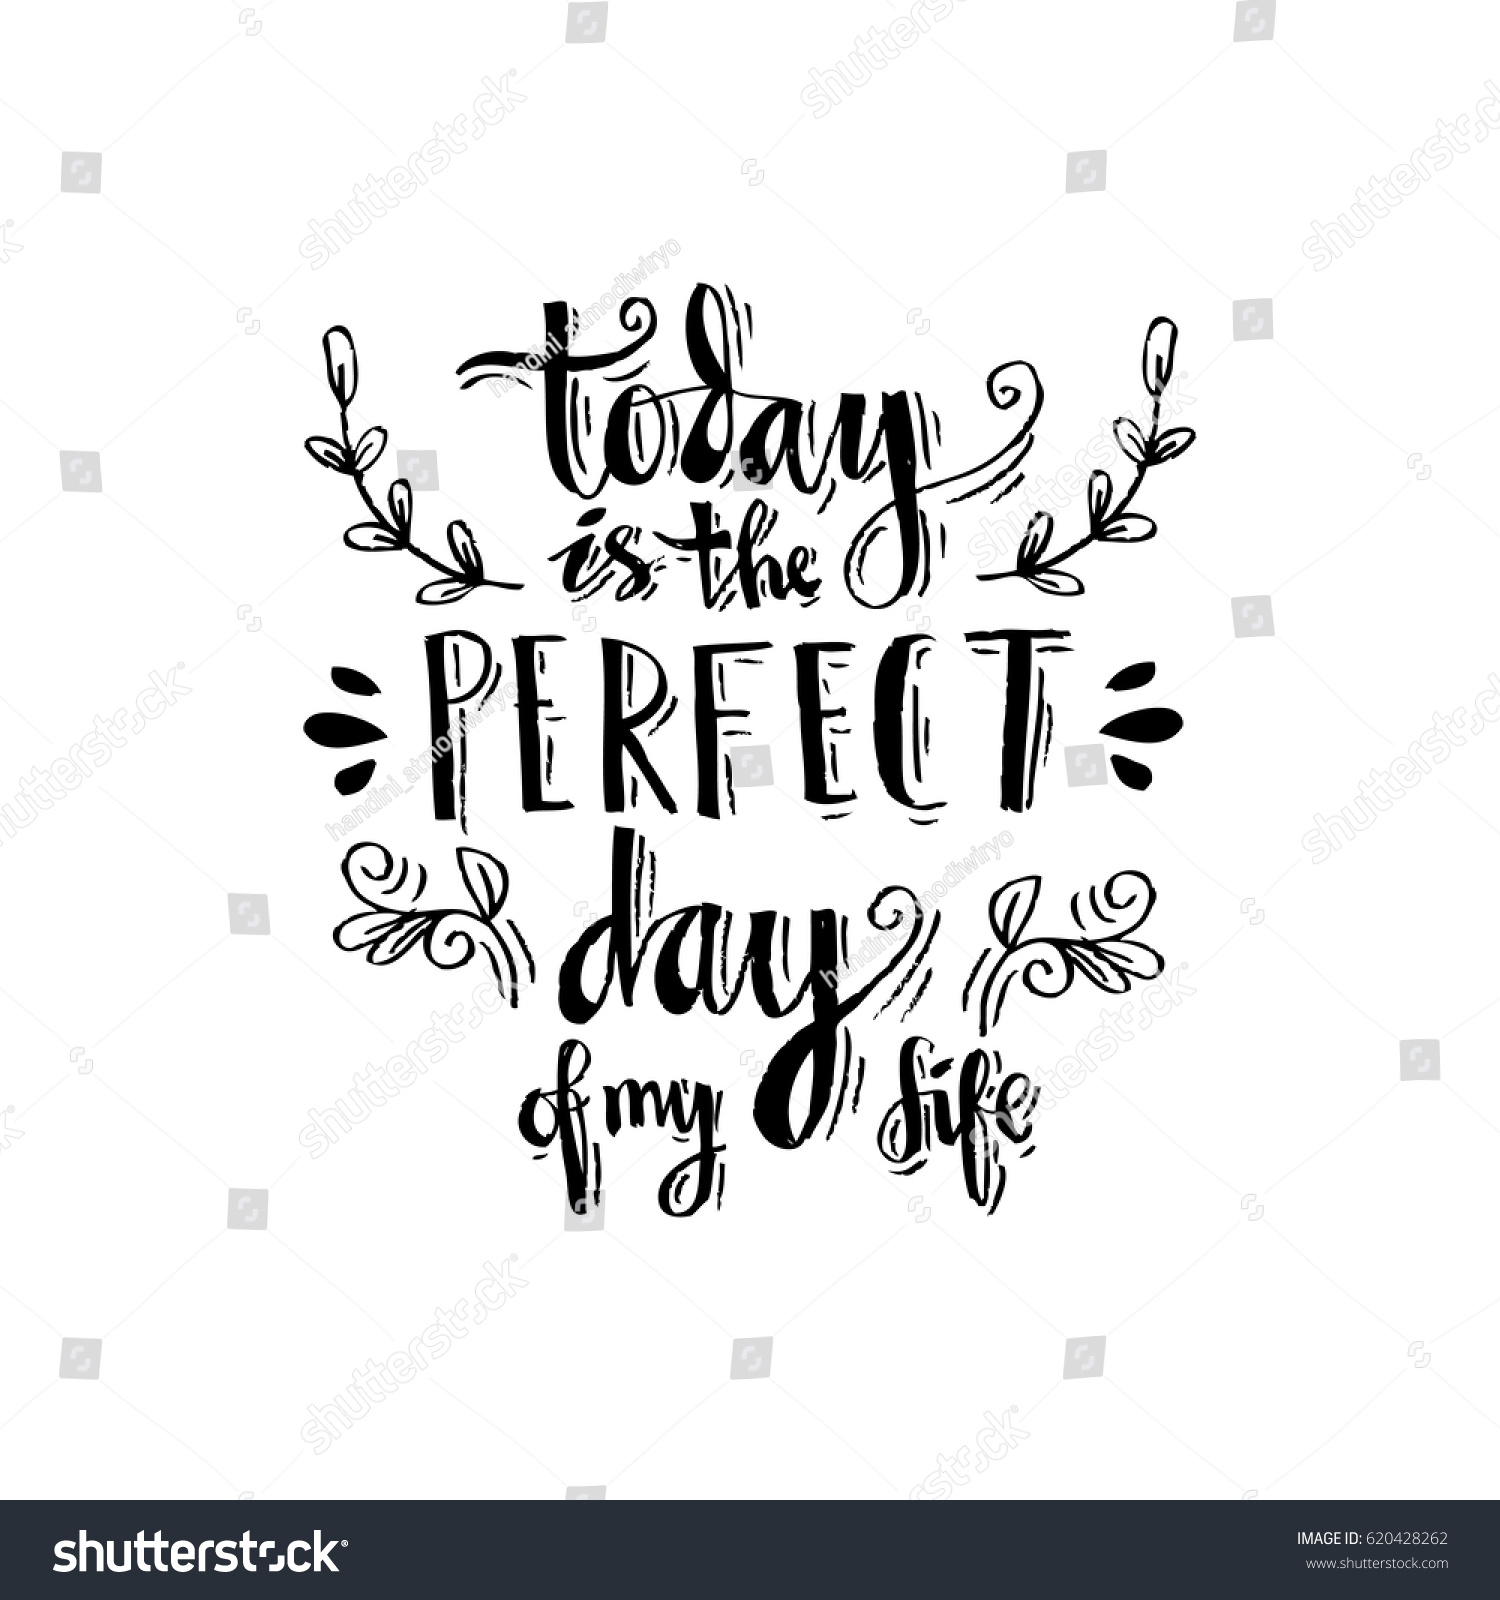 Quote For Today About Life Today Perfect Day My Life Handwritten Stock Vector 620428262